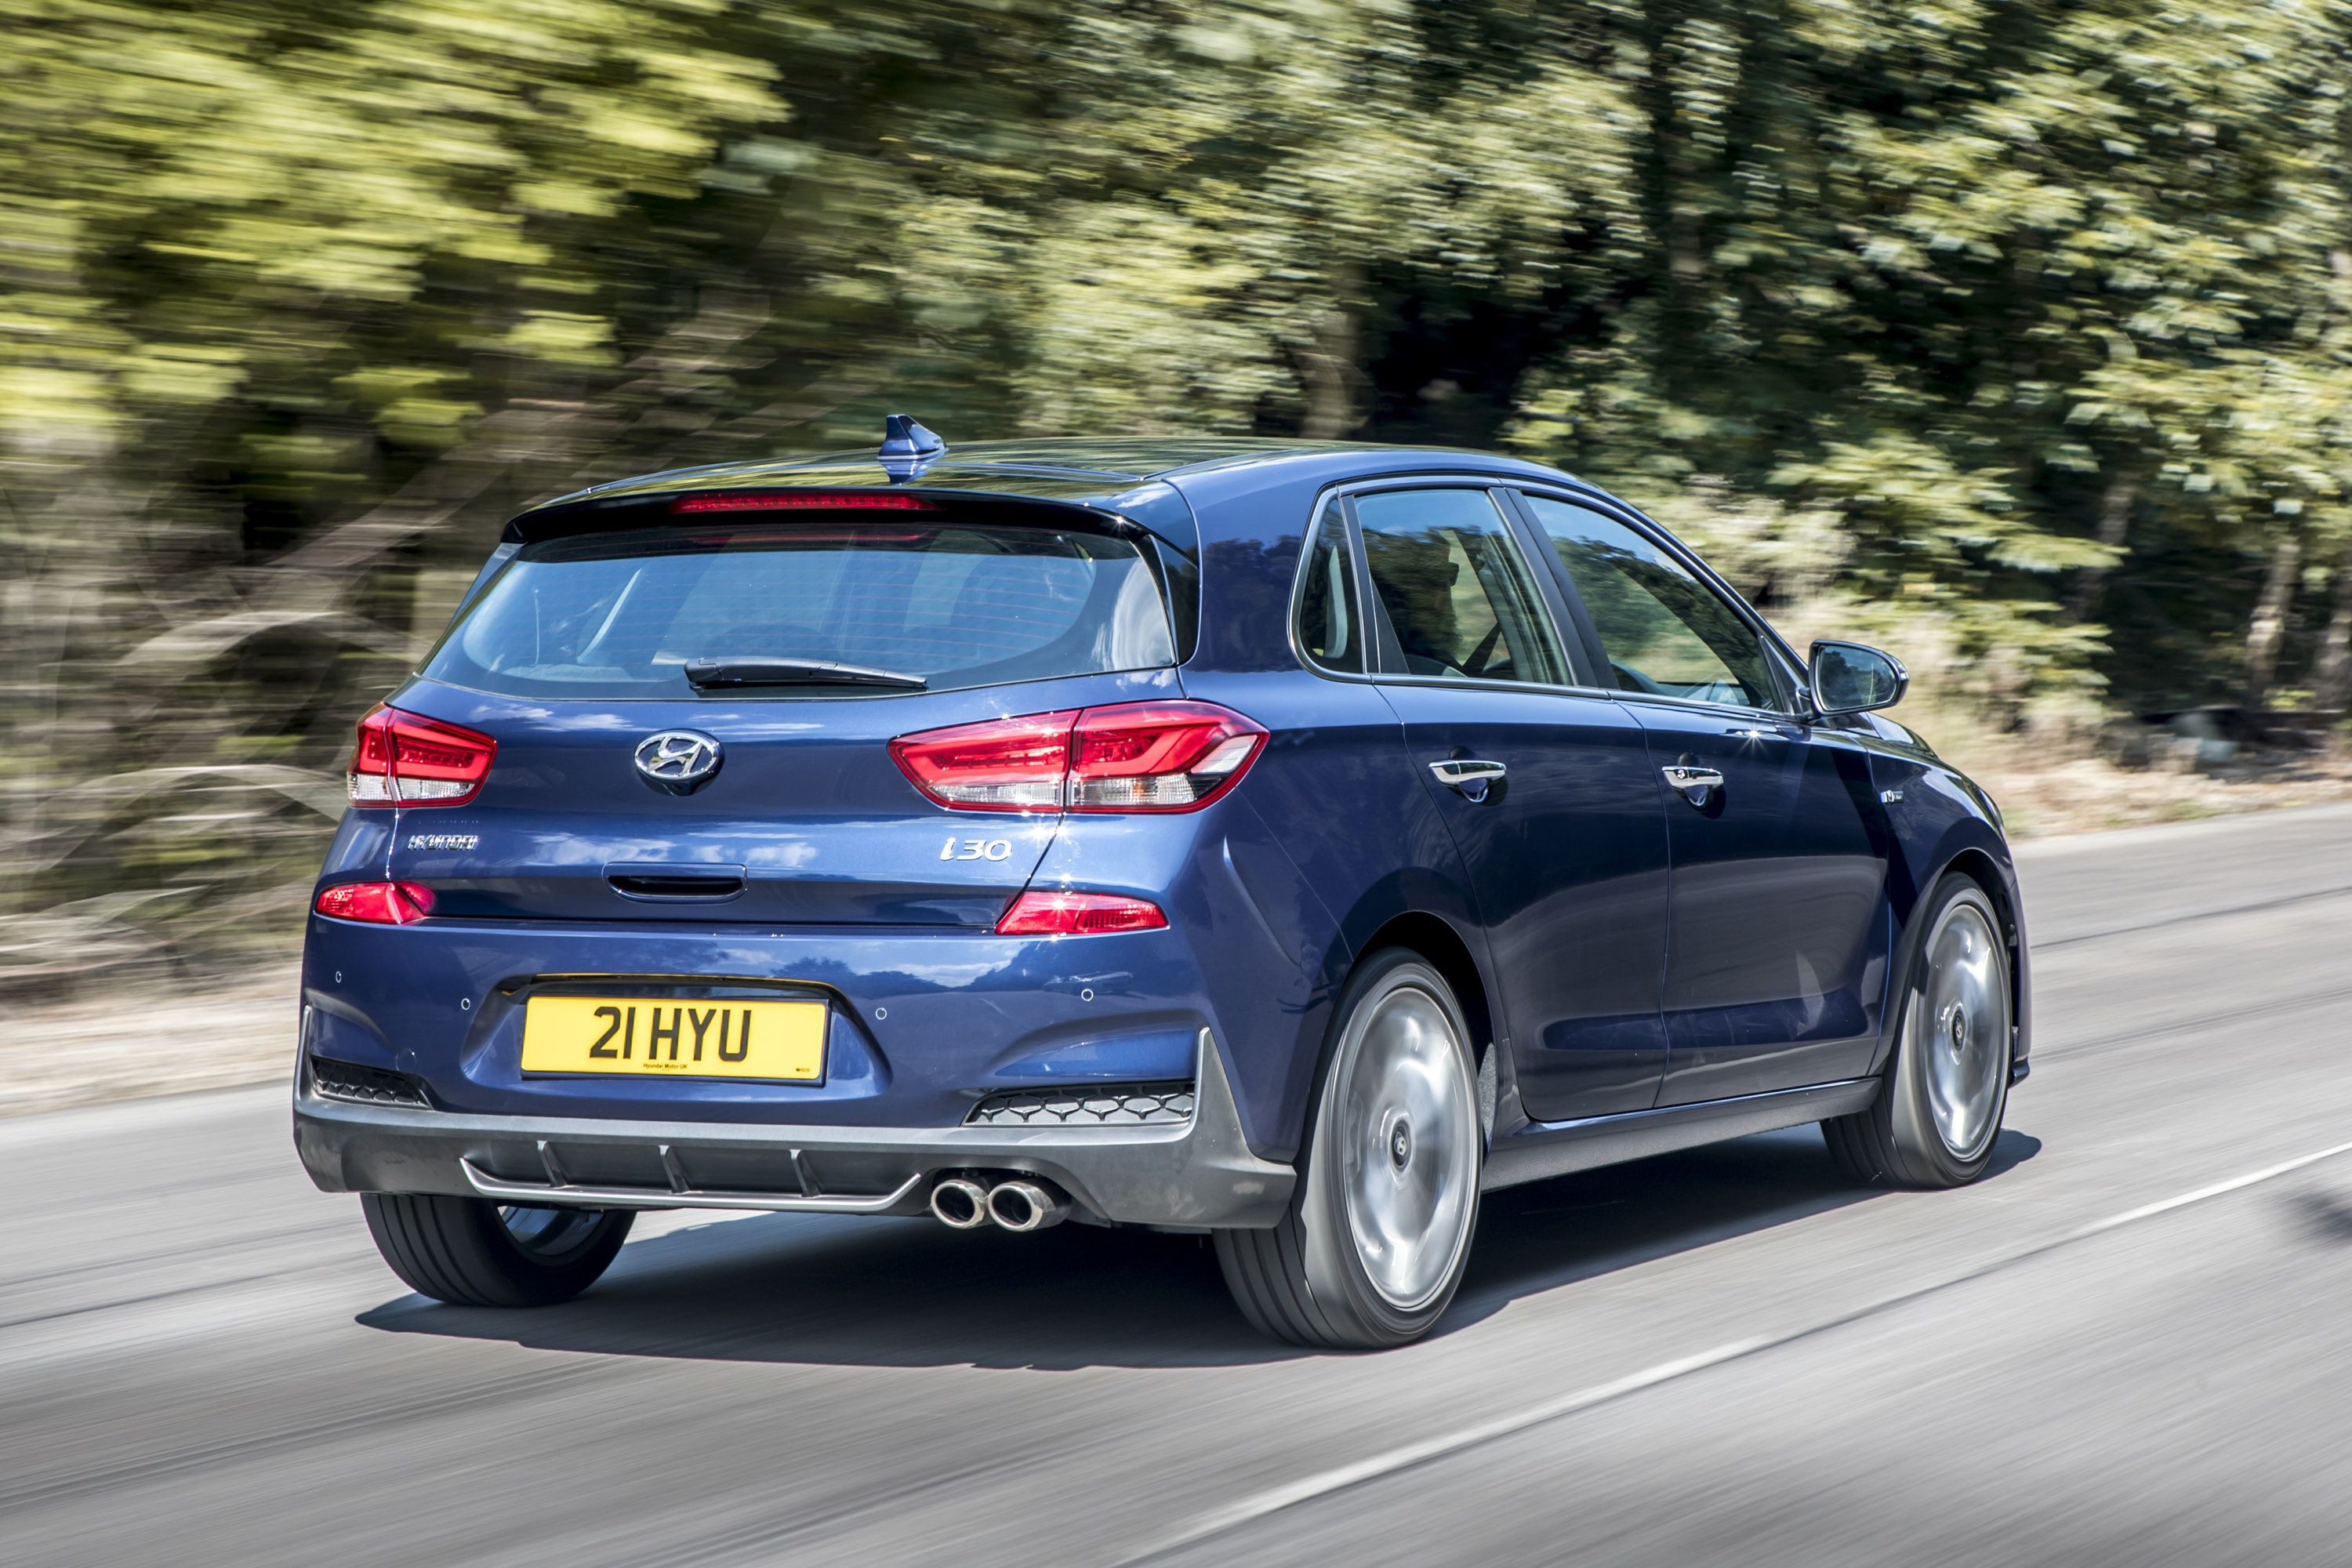 Rear view of Hyundai I30 N-line driving on a road